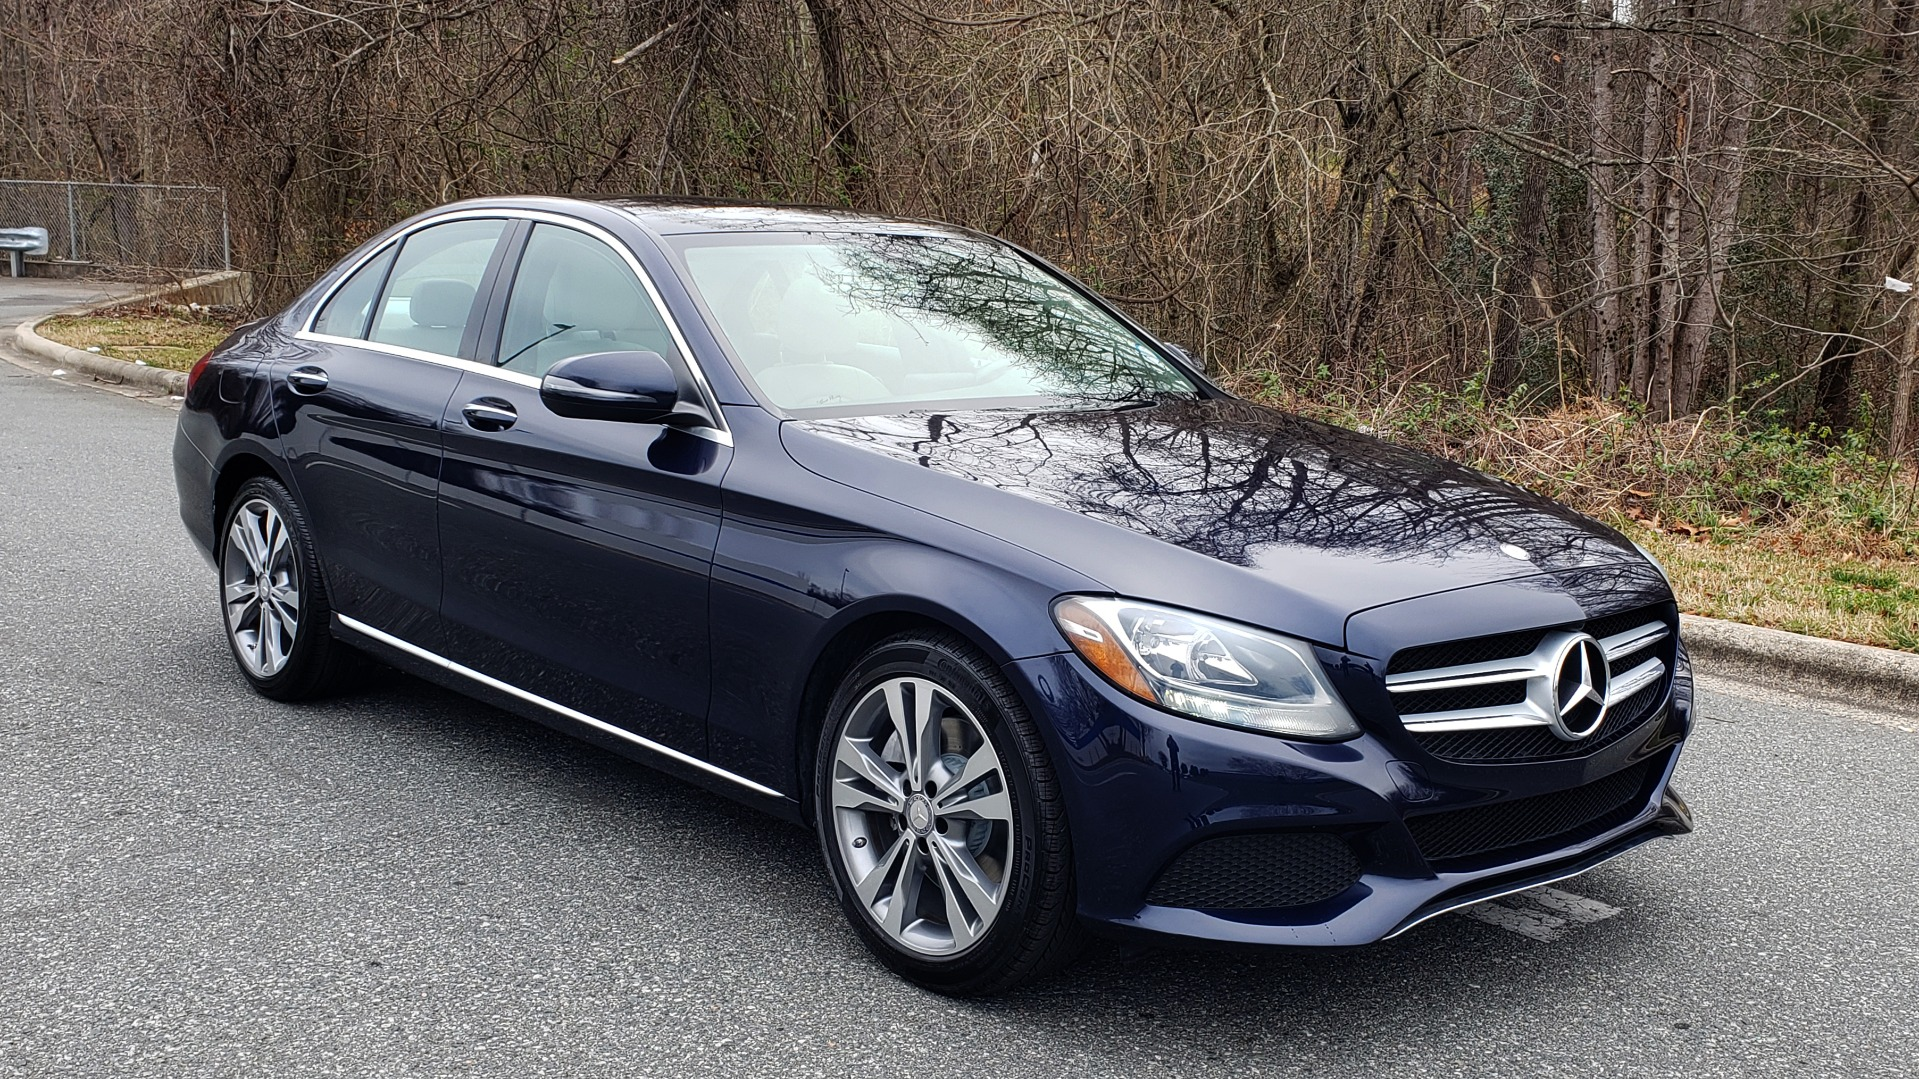 Used 2016 Mercedes-Benz C-CLASS C 300 / PREM PKG / PANO-ROOF / BSA / HTD STS / REARVIEW for sale Sold at Formula Imports in Charlotte NC 28227 4